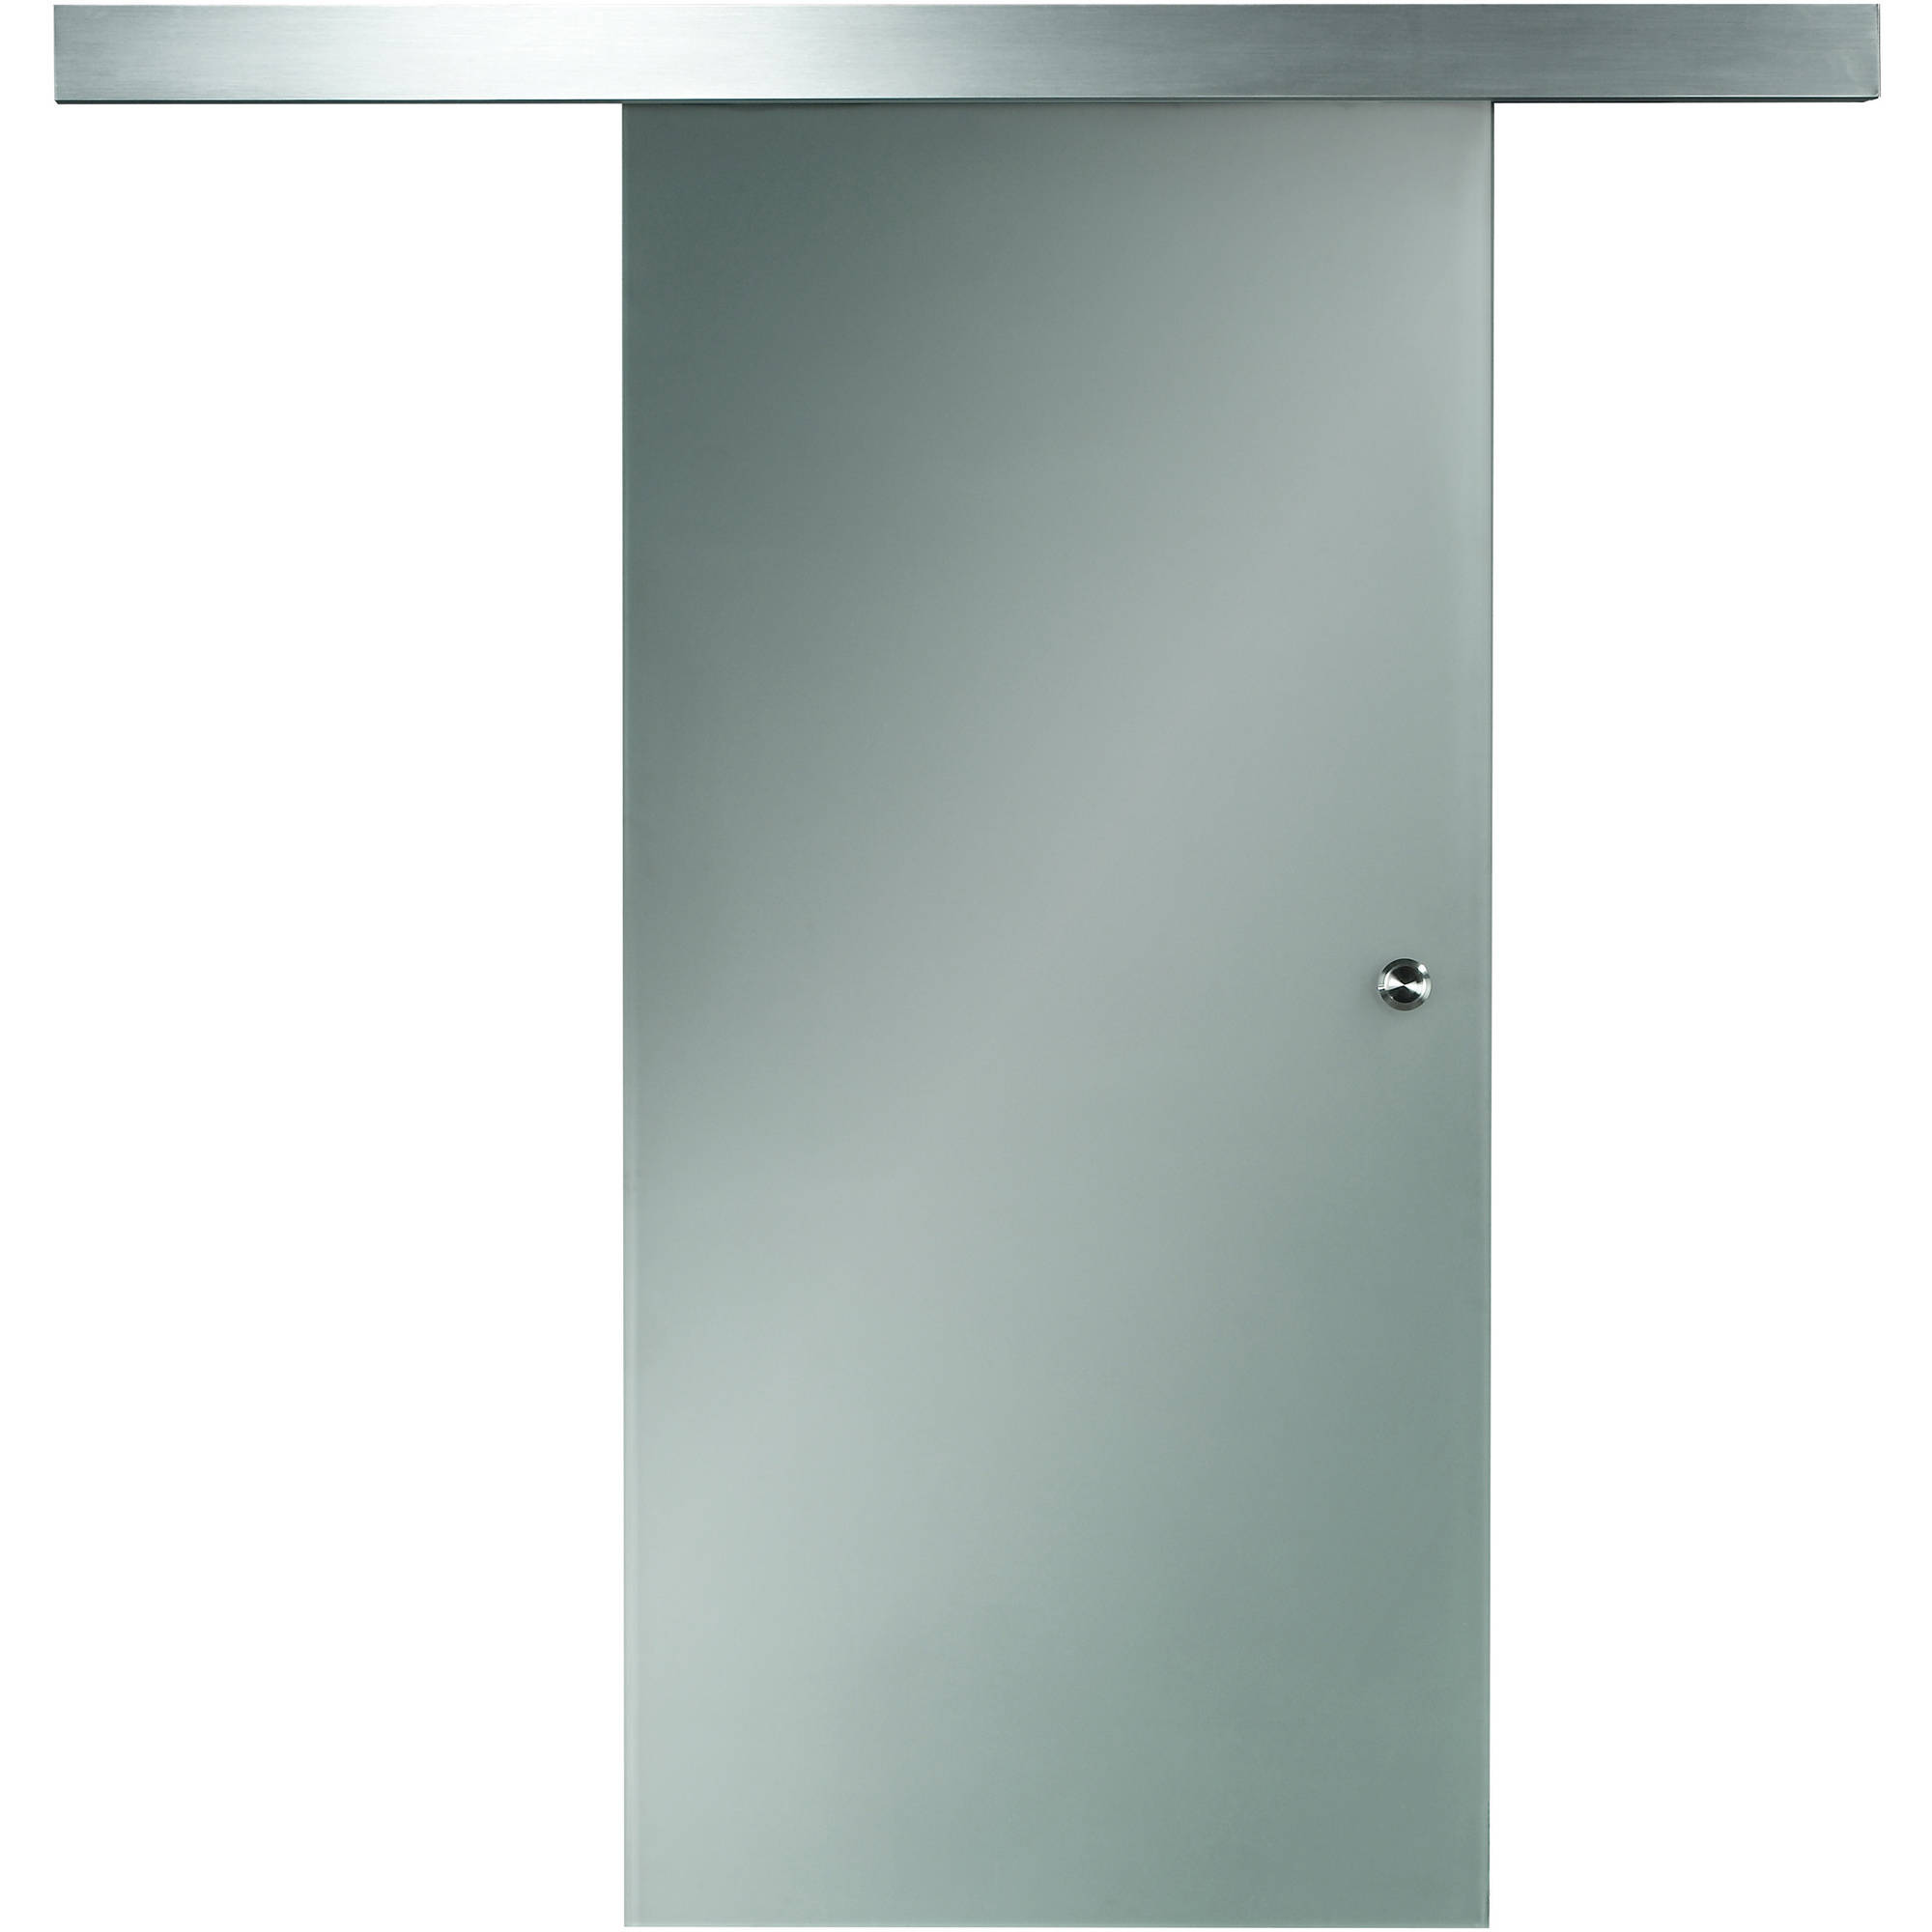 lowes s wall with art doors lowe door frosted privacy bathroom interior glass pocket at